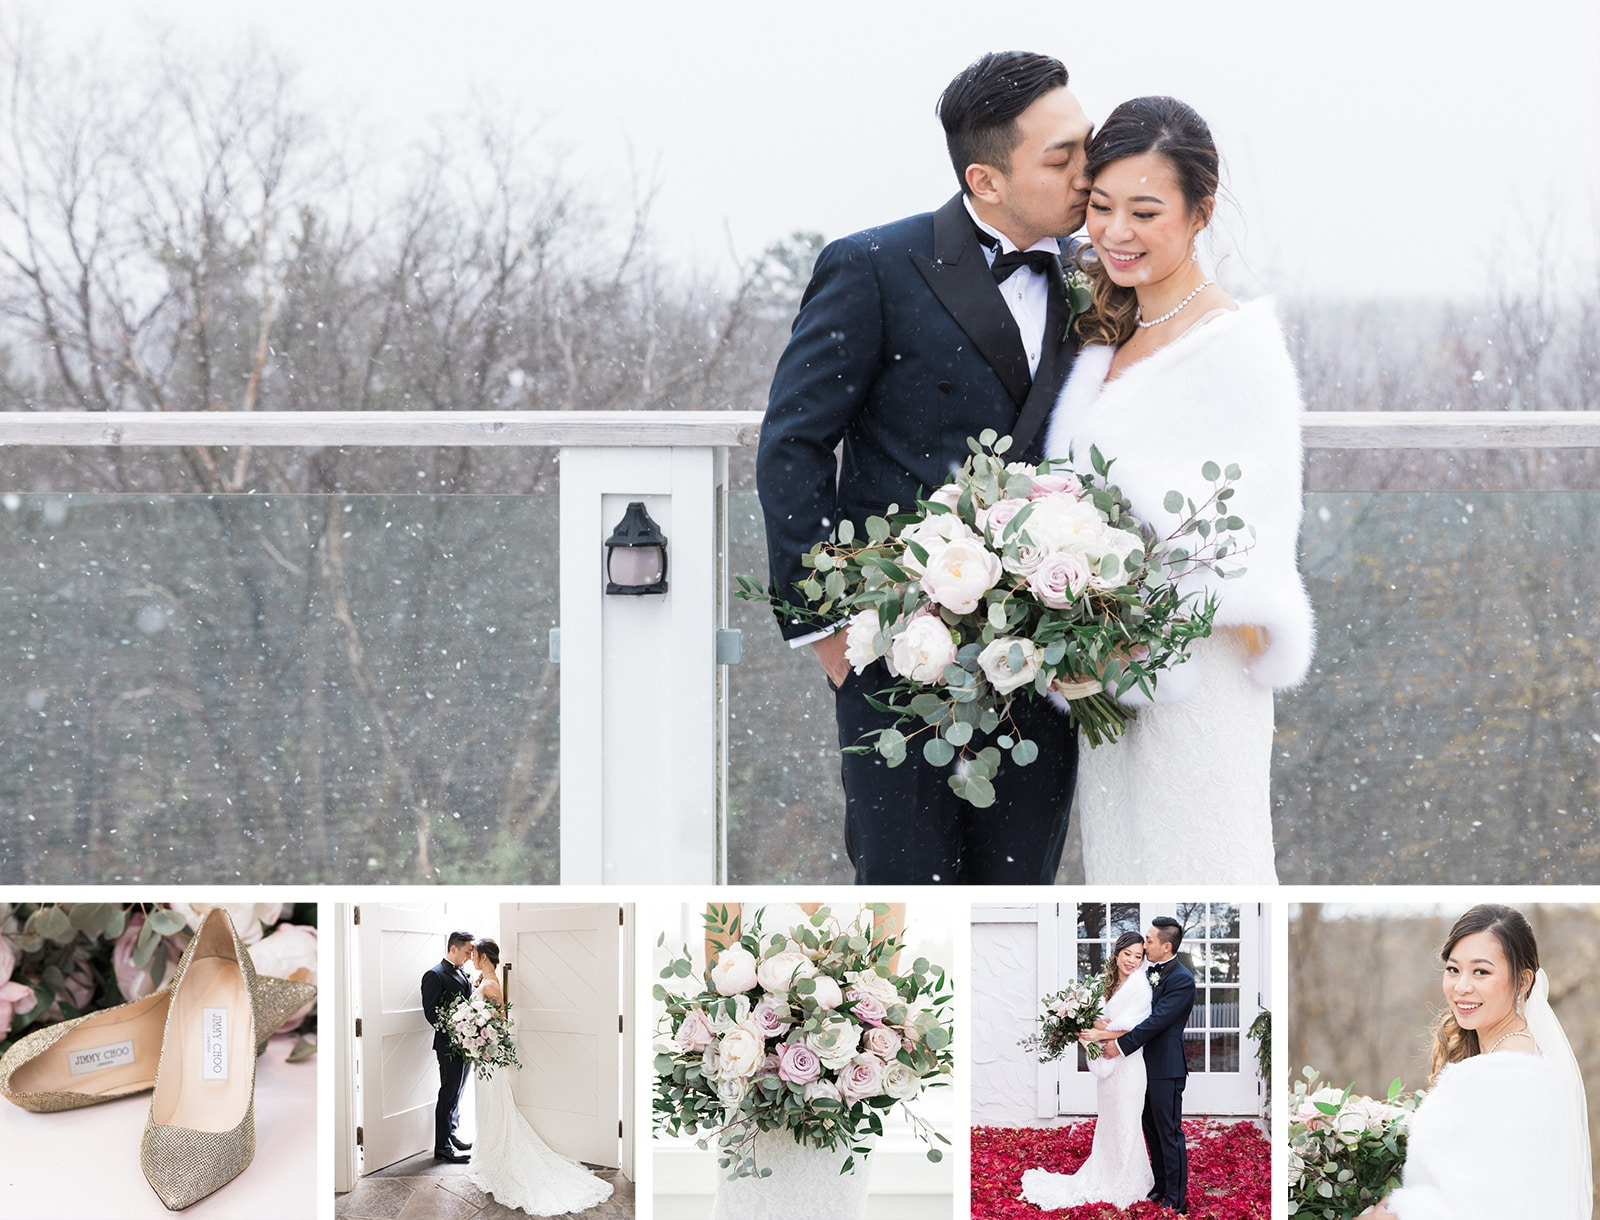 Wintery Chinese Wedding at The Doctor's House: Natalie + Charlie